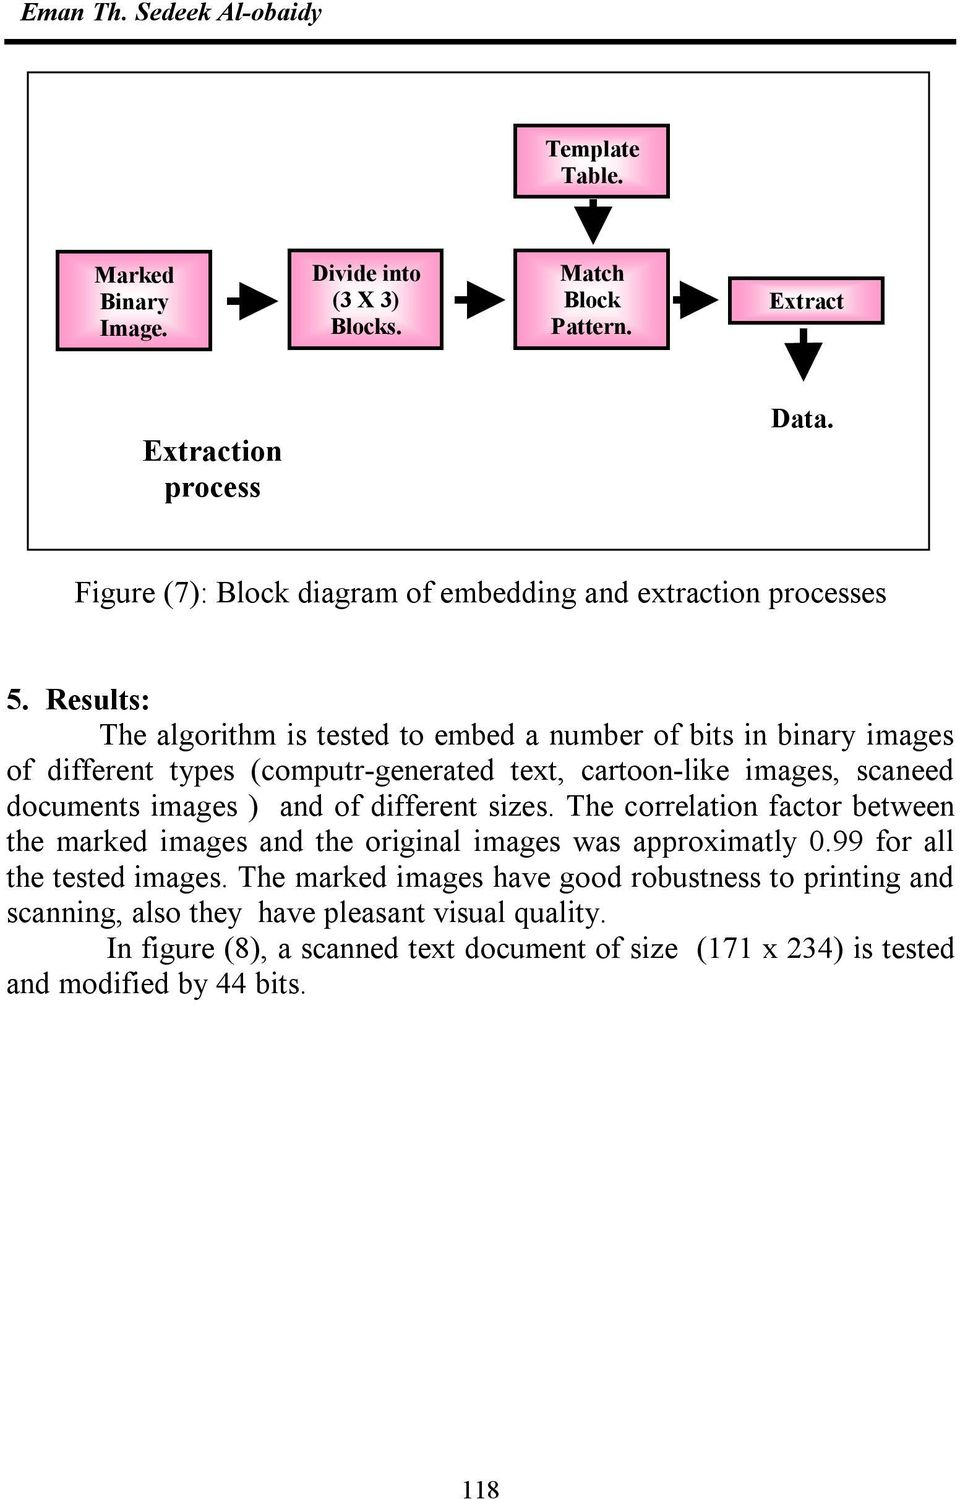 Results: The algorithm is tested to embed a number of bits in binary images of different types (computr-generated text, cartoon-like images, scaneed documents images ) and of